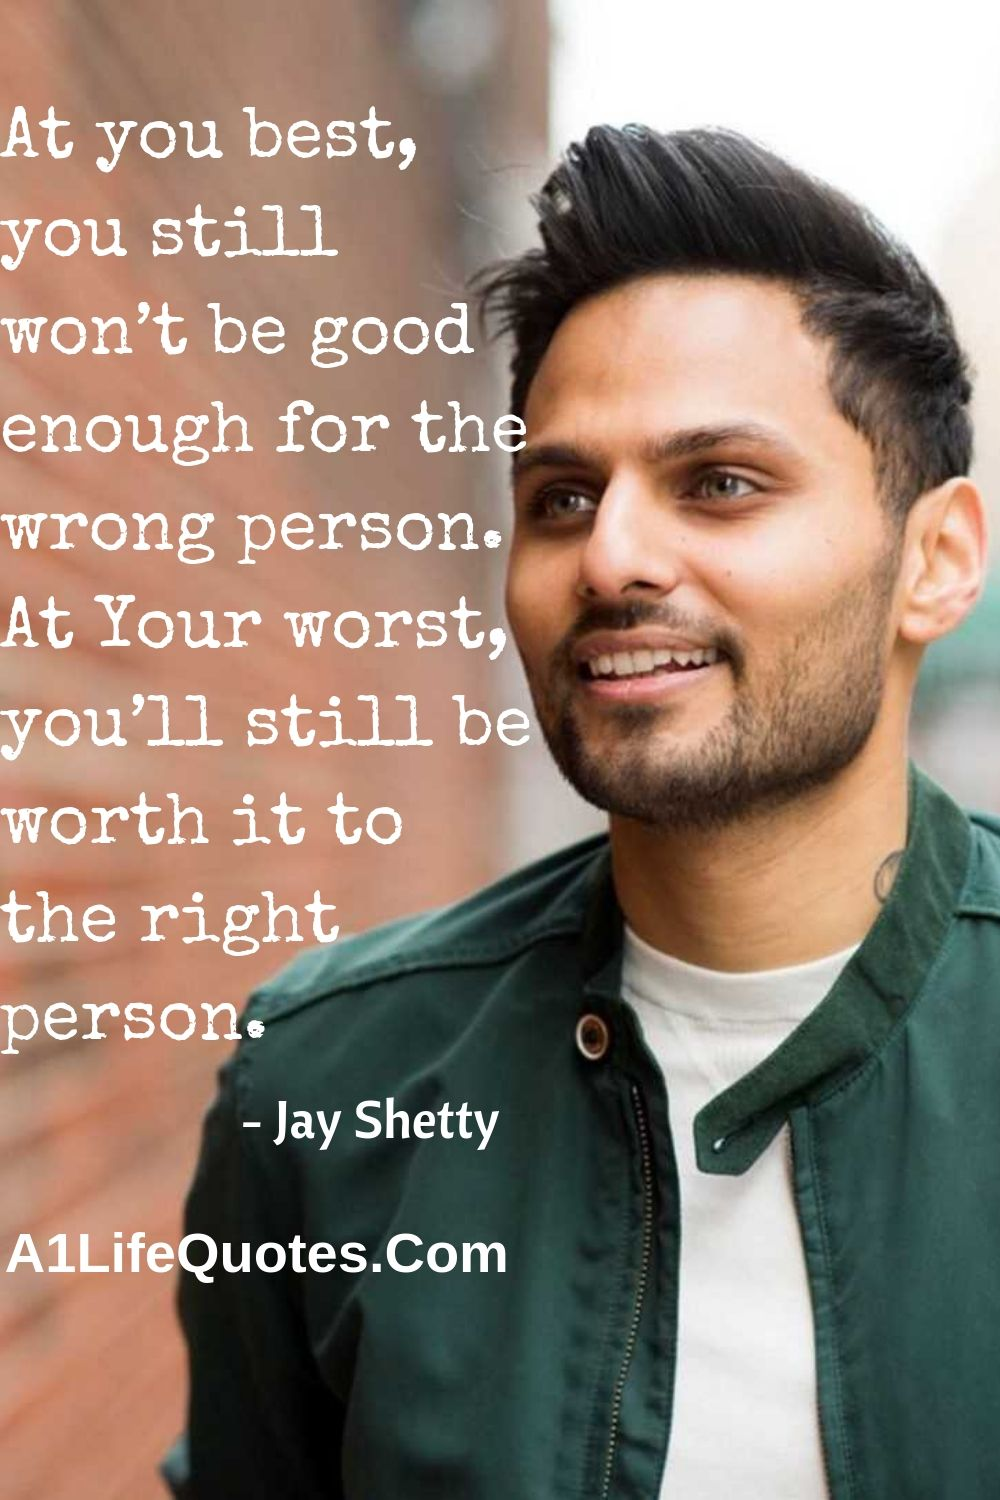 Jay Shetty Quotes About Life  Life quotes, The right person